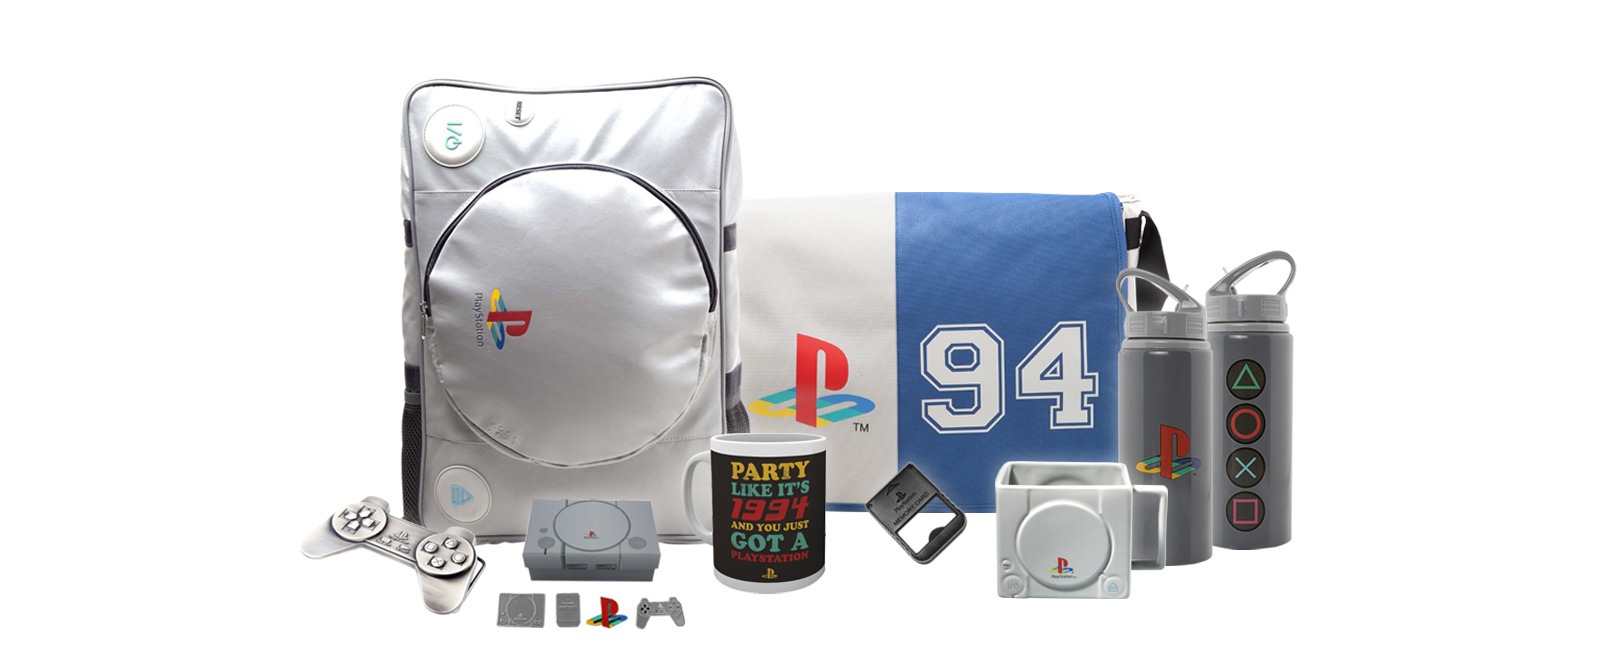 PlayStation Gear merchandise